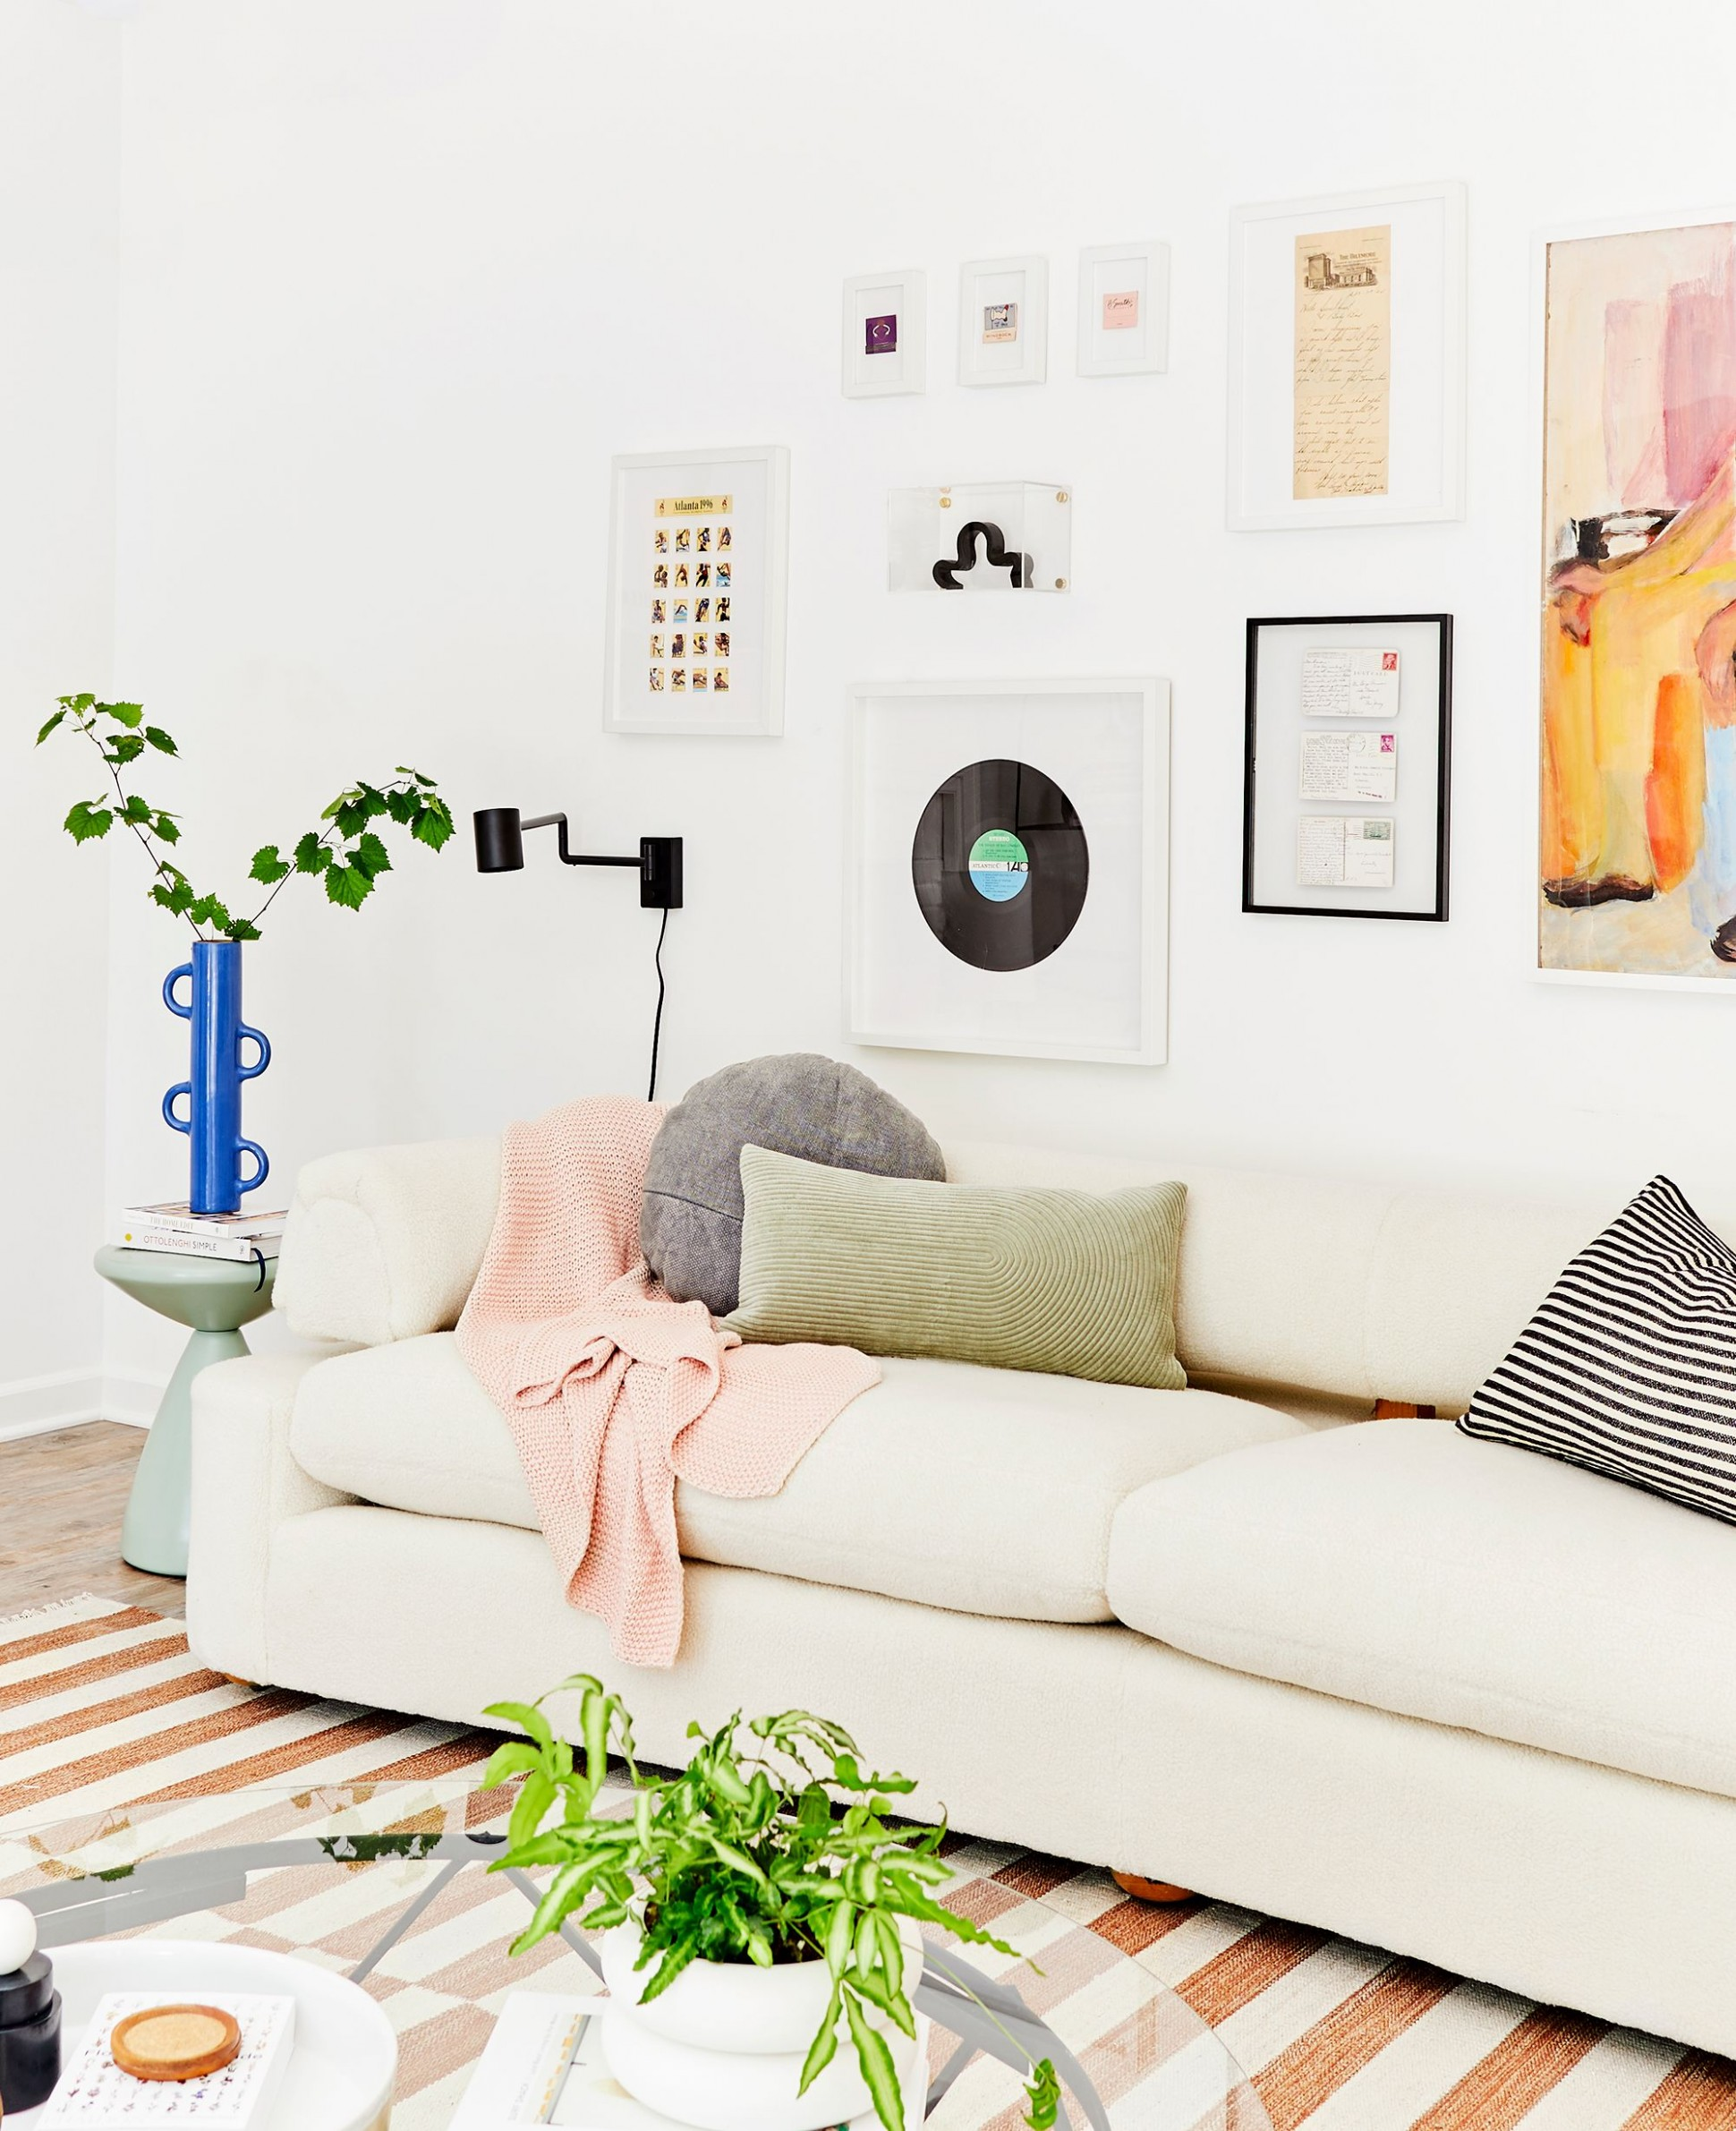 How to Decorate Your First Apartment - First Apartment Decorating  - Apartment Living Room Decor Ideas